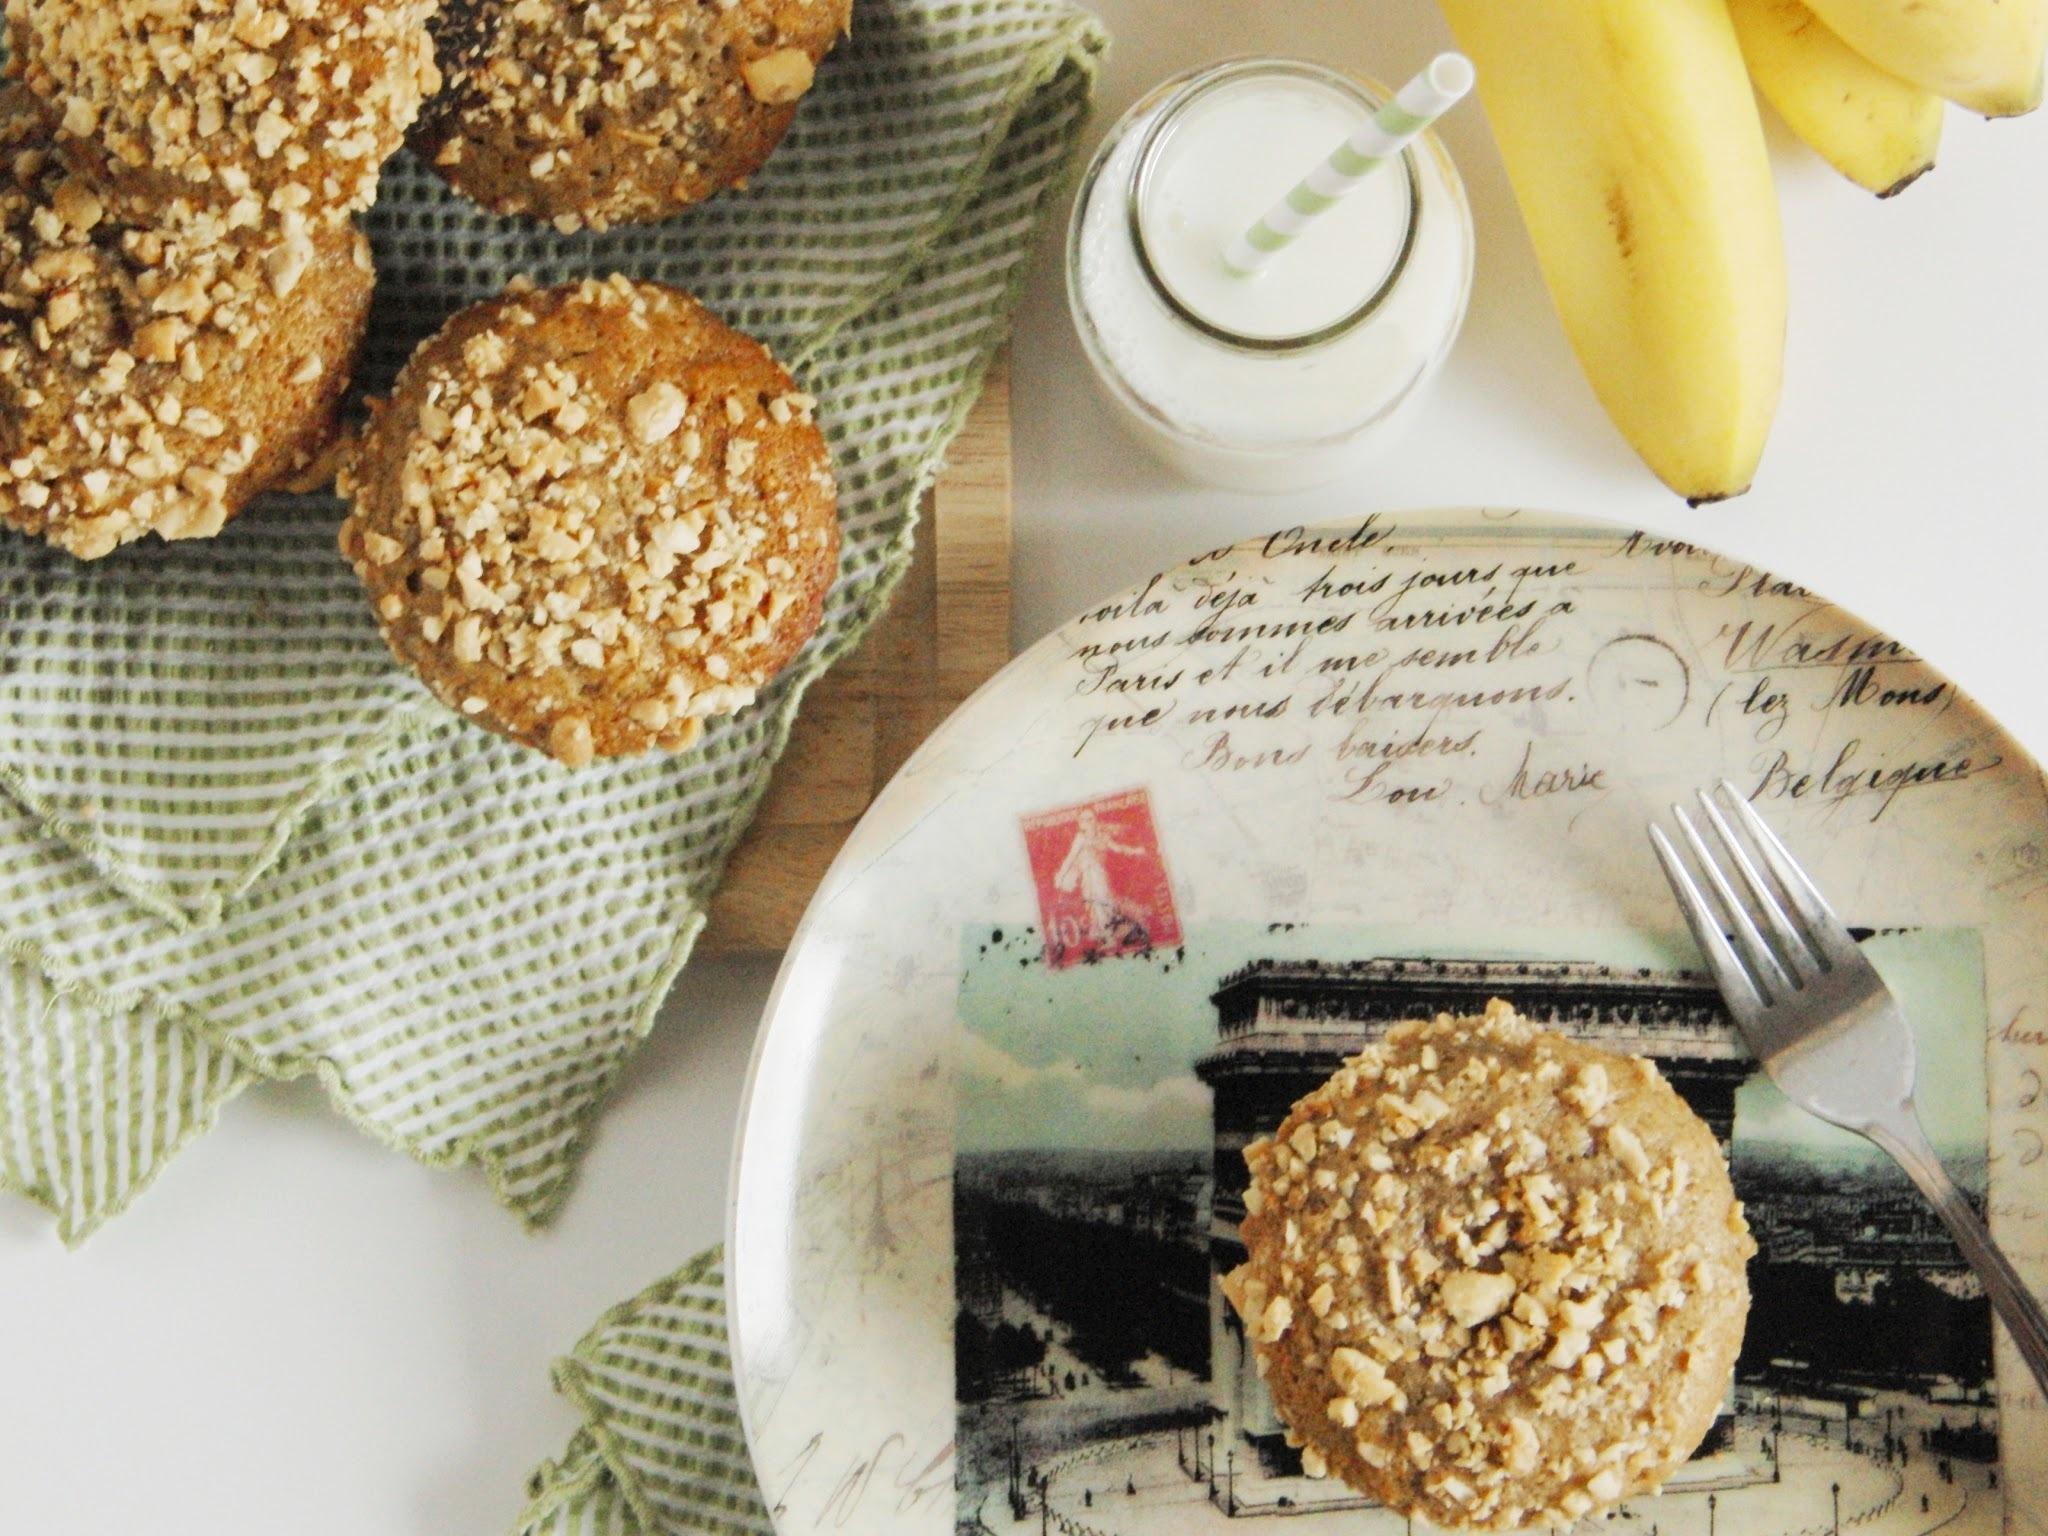 Banana Muffins filled with Peanut Butter and Honey...  and a Day at the Zoo